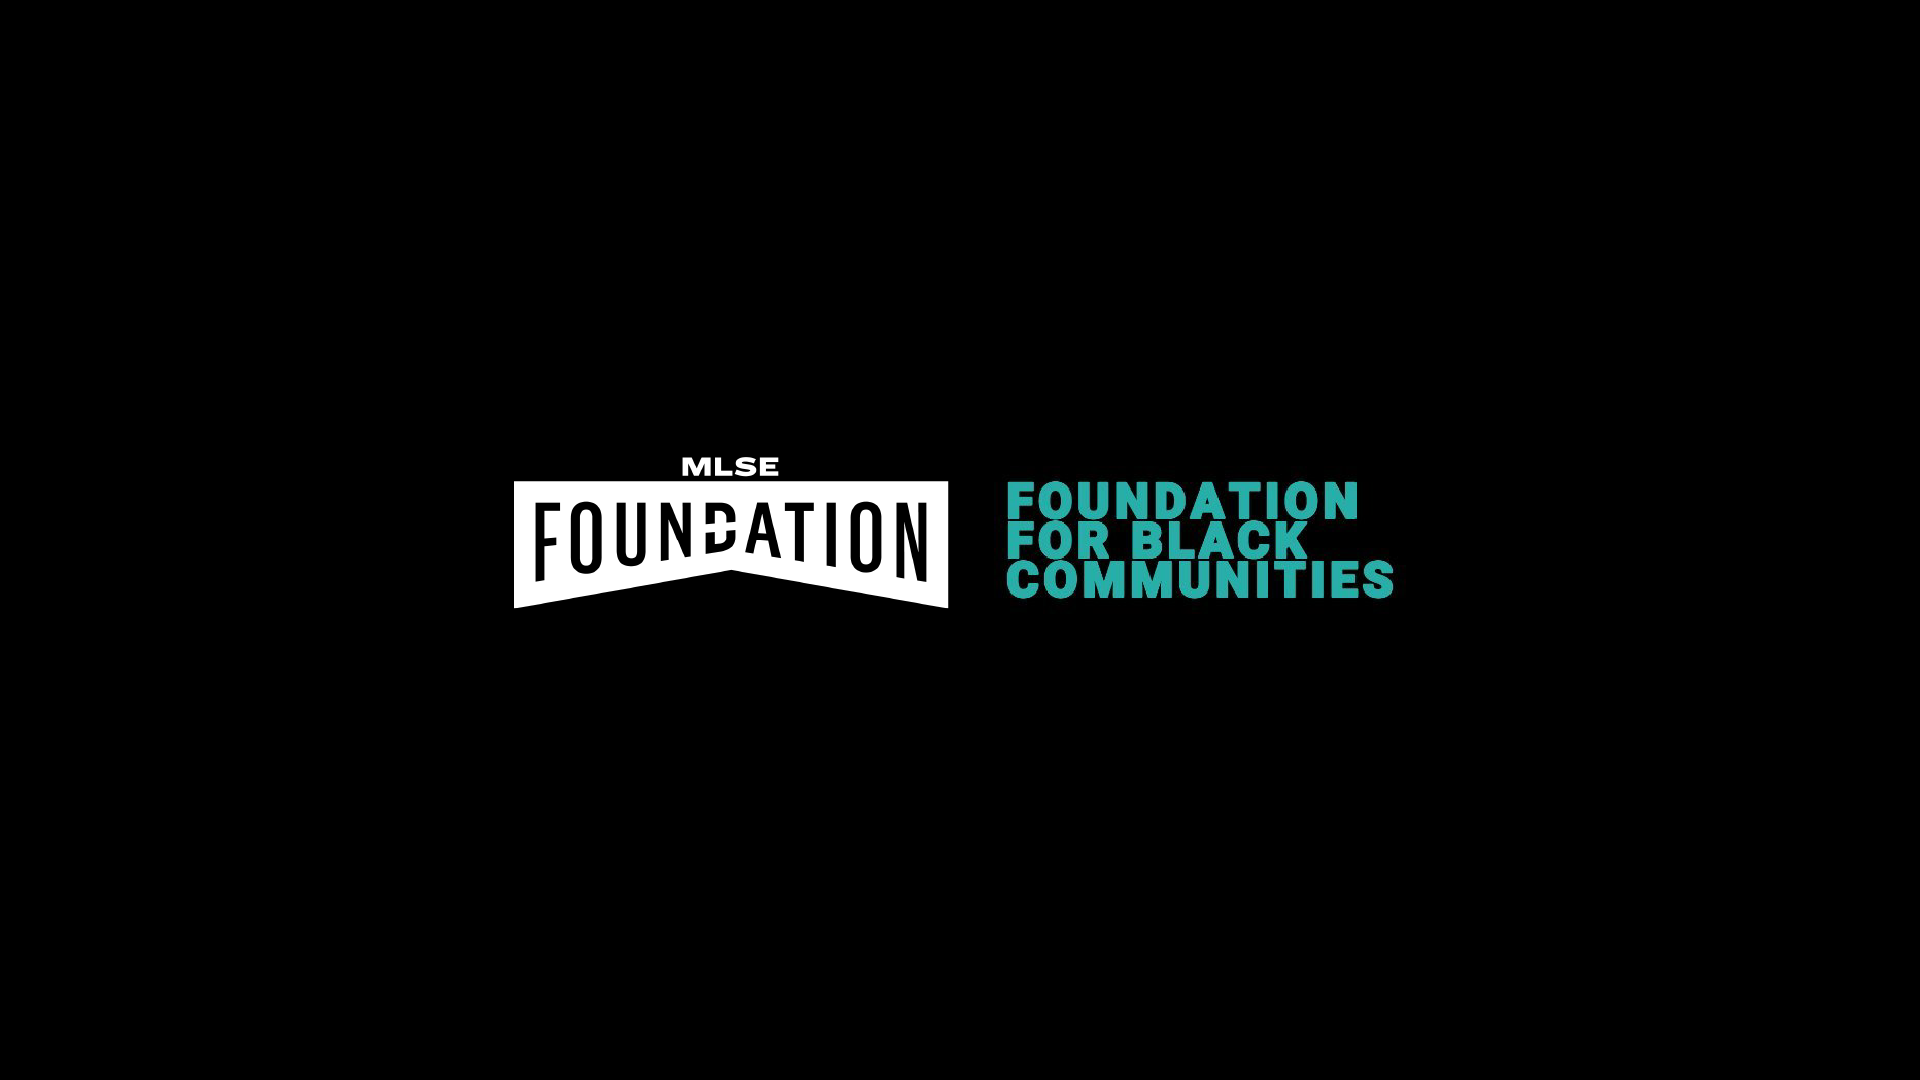 MLSE FOUNDATION PARTNERS WITH FOUNDATION FOR BLACK COMMUNITIES TO SUPPORT GROWTH OF BLACK COMMUNITIES THROUGH SPORT